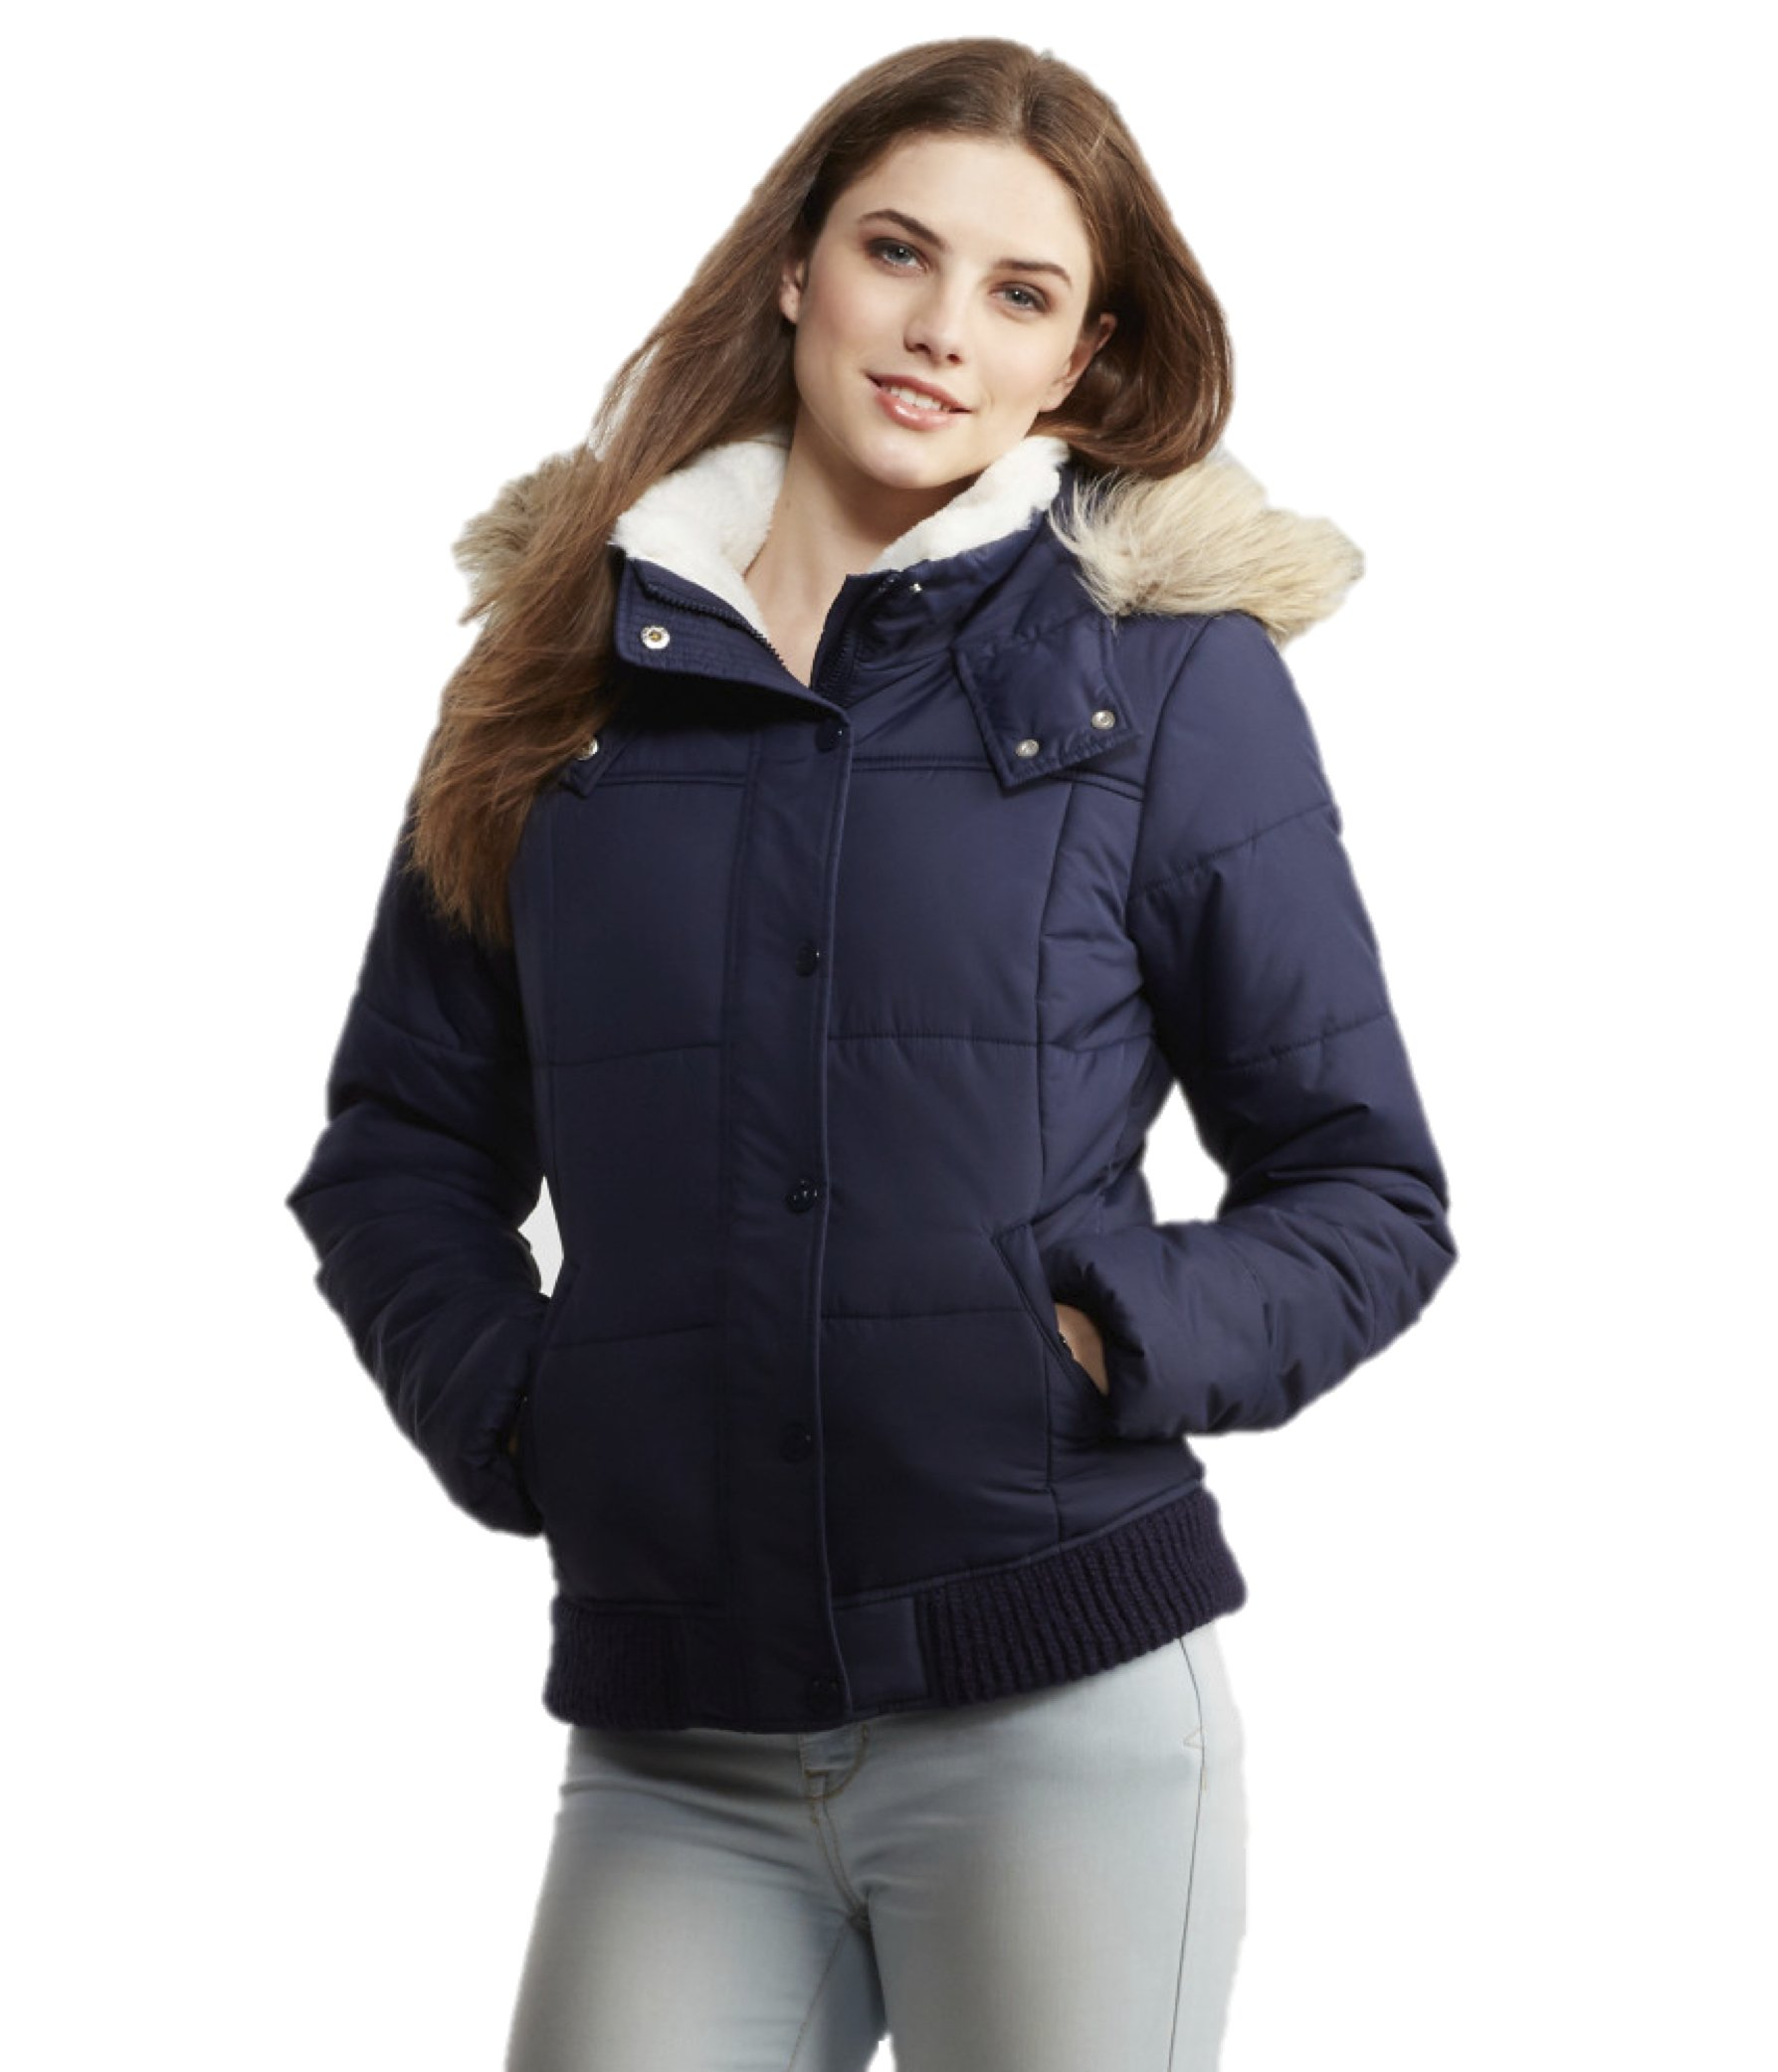 Aeropostale Womens Faux Fur Trimmed Puffer Jacket Large Navy